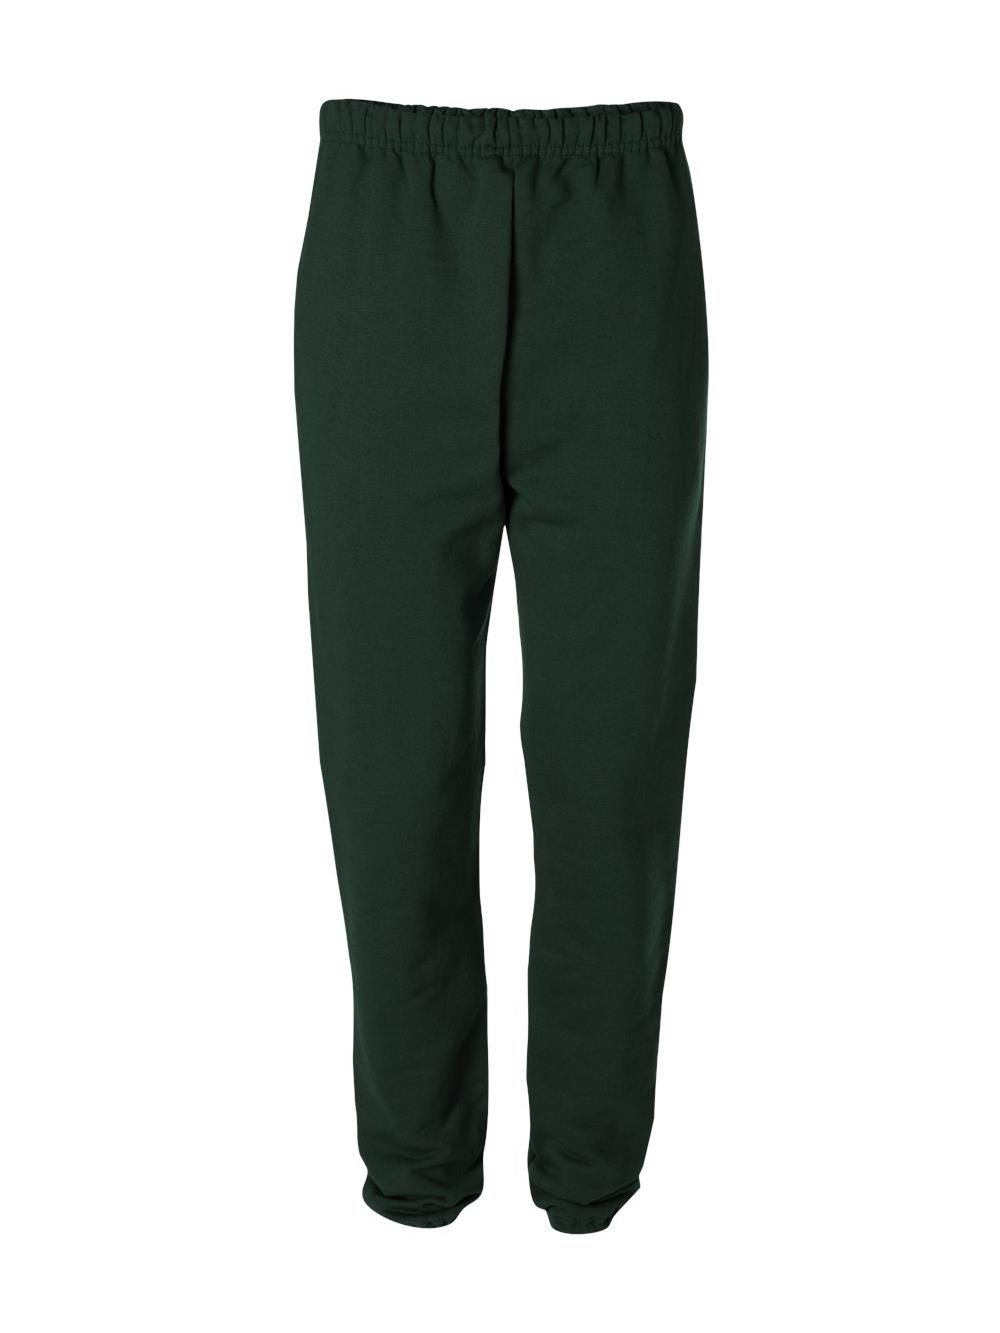 Jerzees-9-5 oz-50/50 Super Sweats NuBlend Fleece Pocketed Sweatpants-4850P